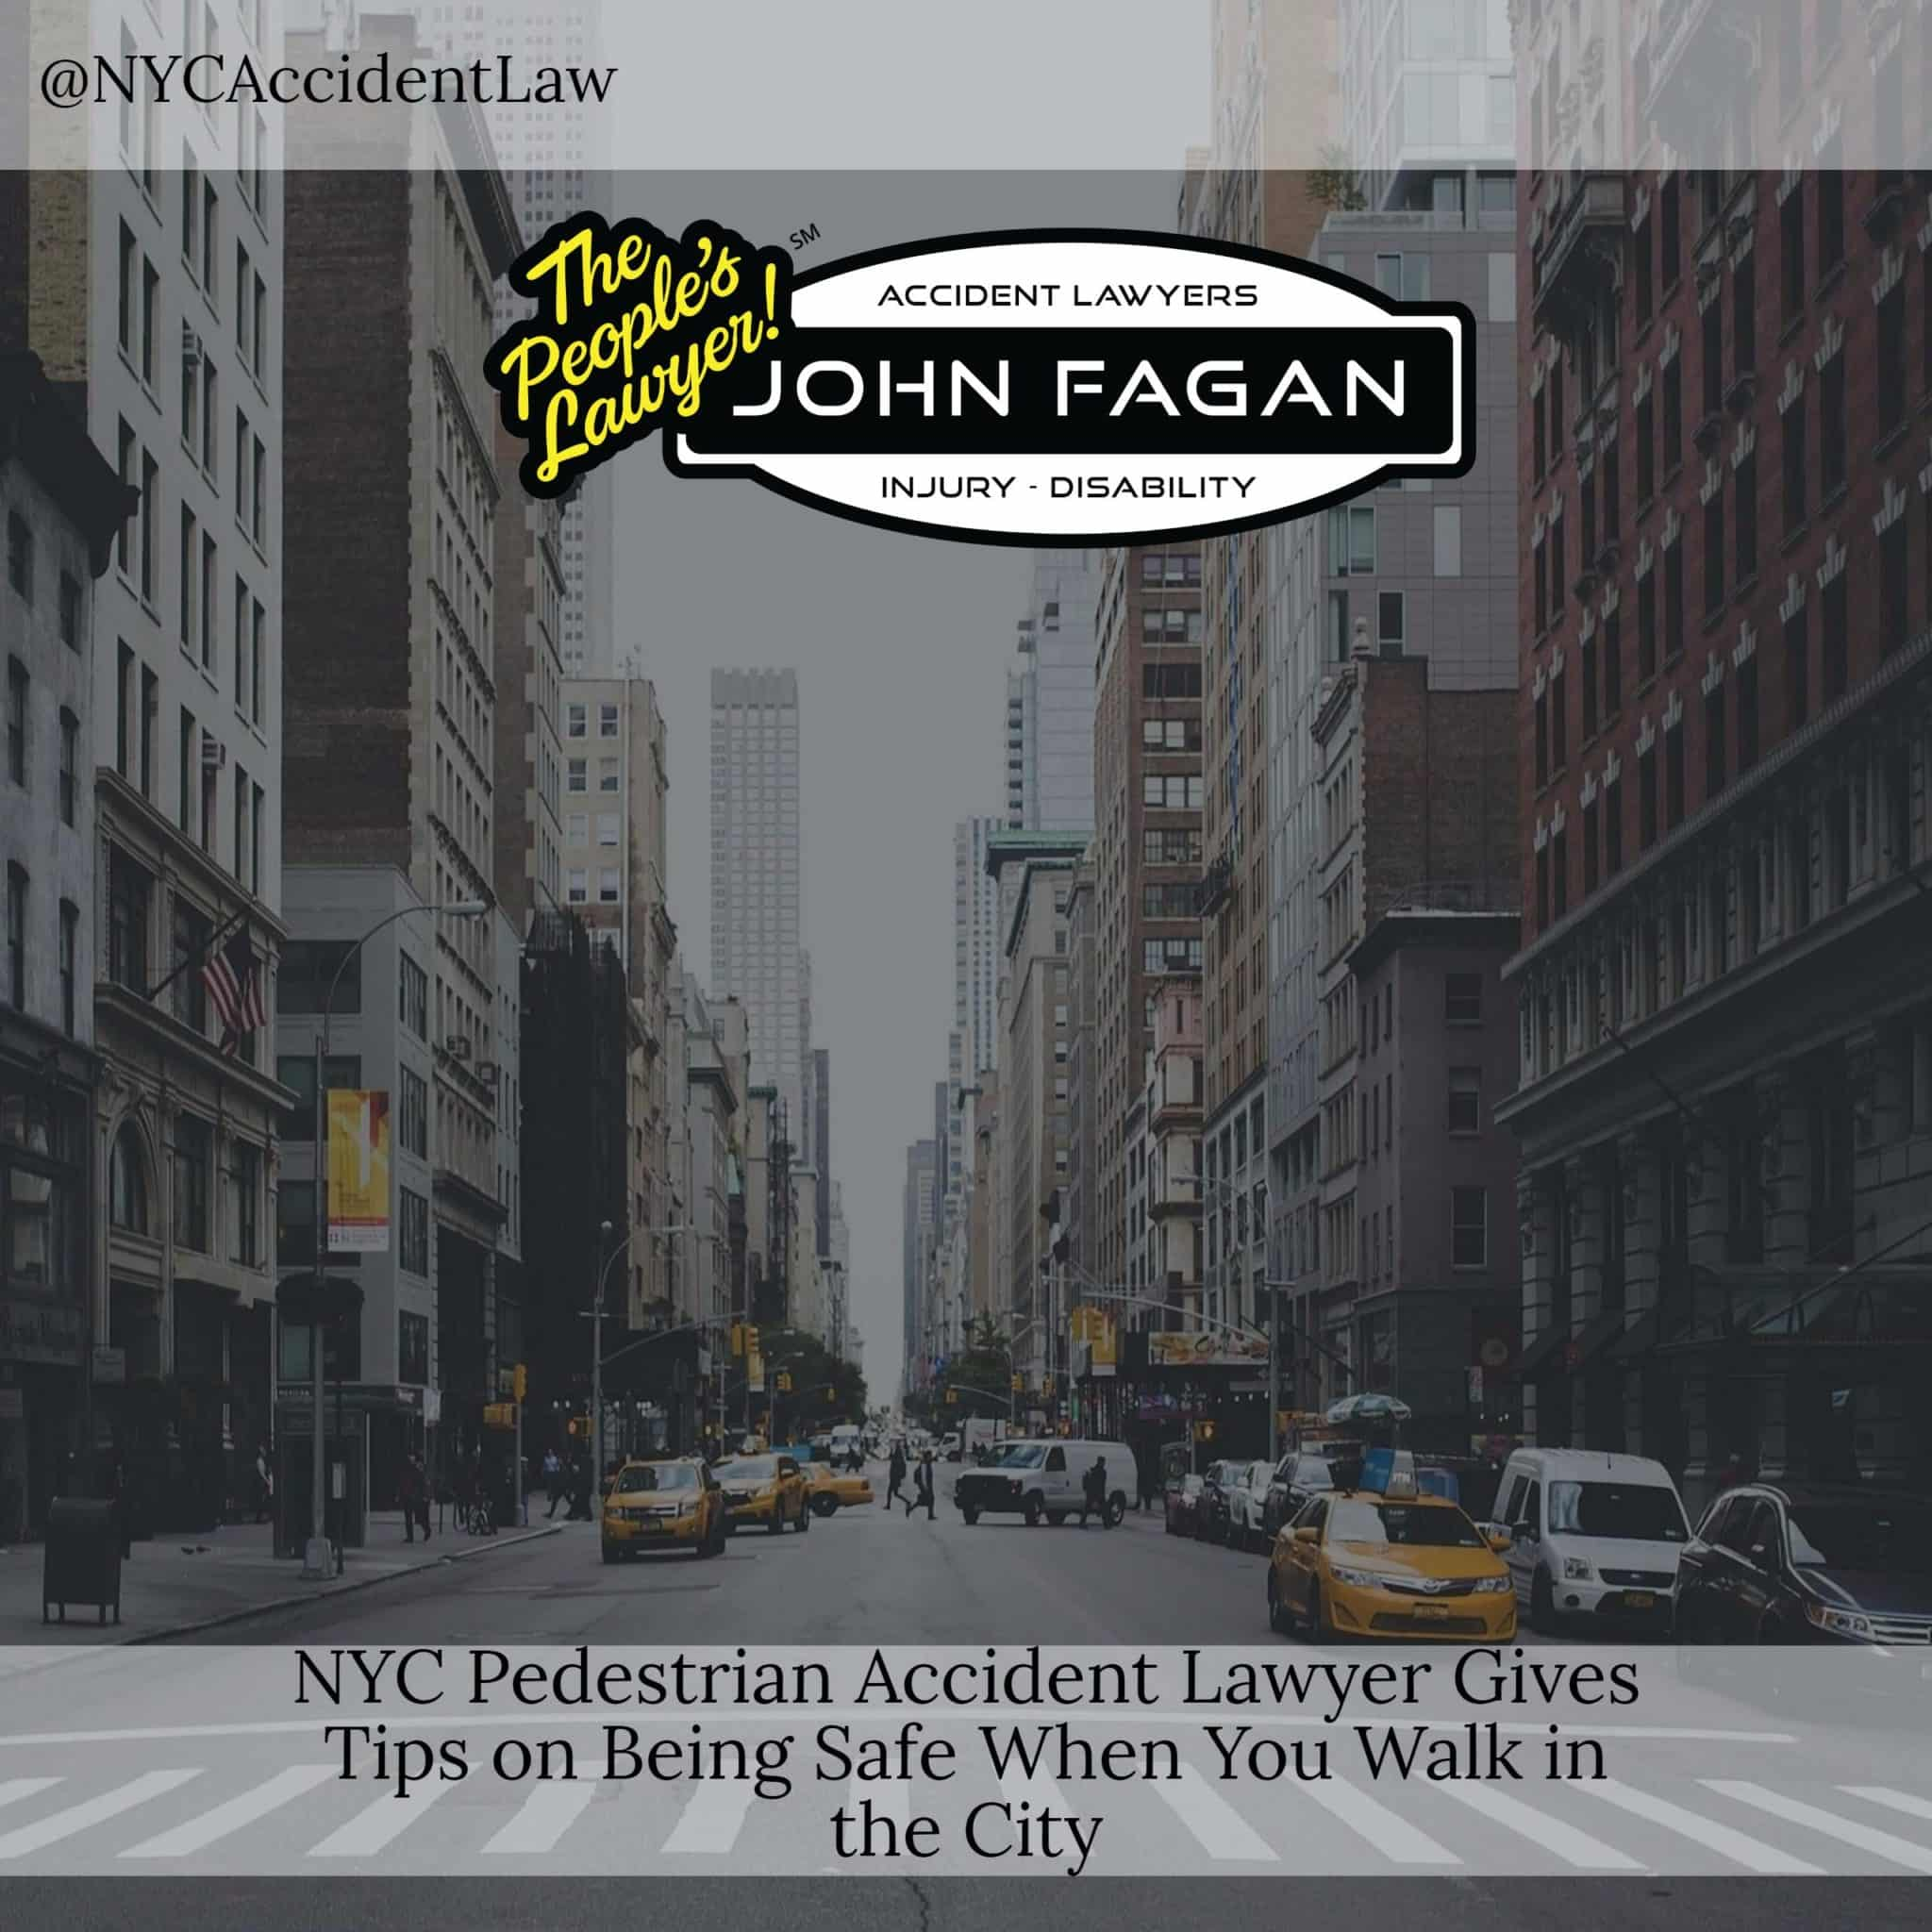 Pedestrian Accident Lawyer Gives Tips On Being Safe When You Walk In The City